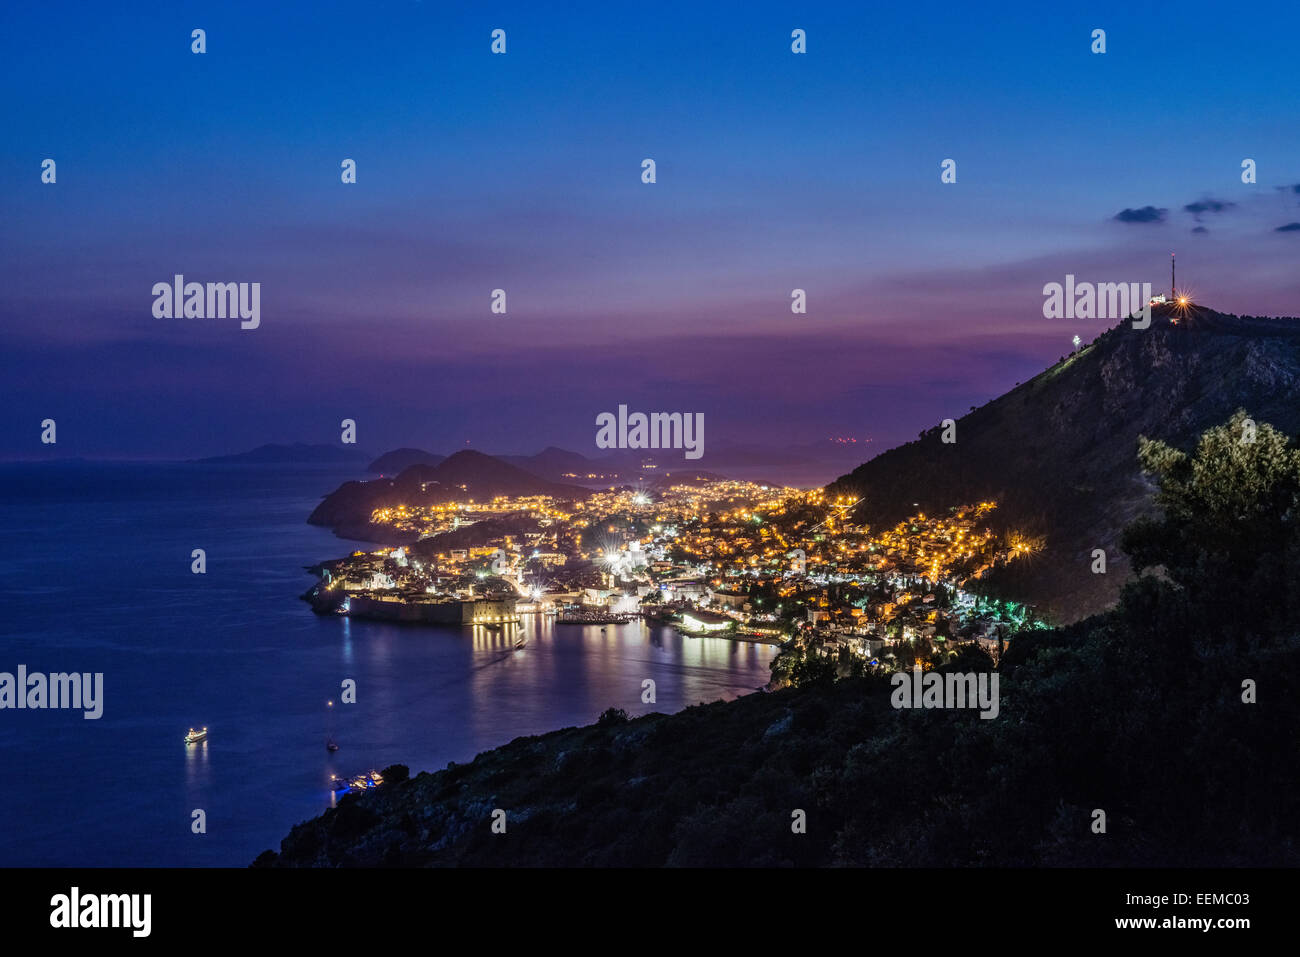 Aerial view of coastal city illuminated at night, Dubrovnik, Dubrovnik-Neretva, Croatia - Stock Image